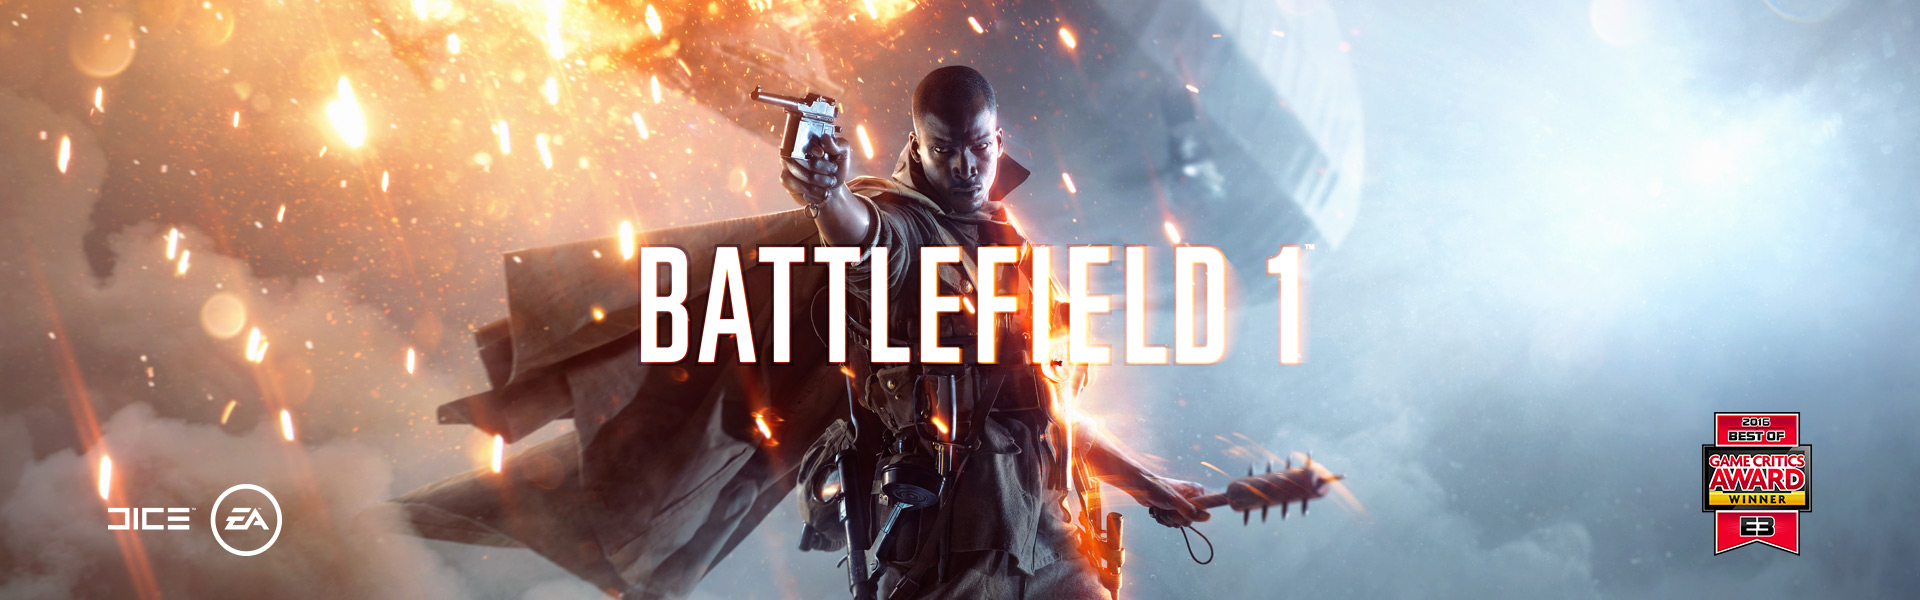 Battlefield 1, Soldier facing forward while pointing gun and holding a grenade, zeppelin on fire in the background